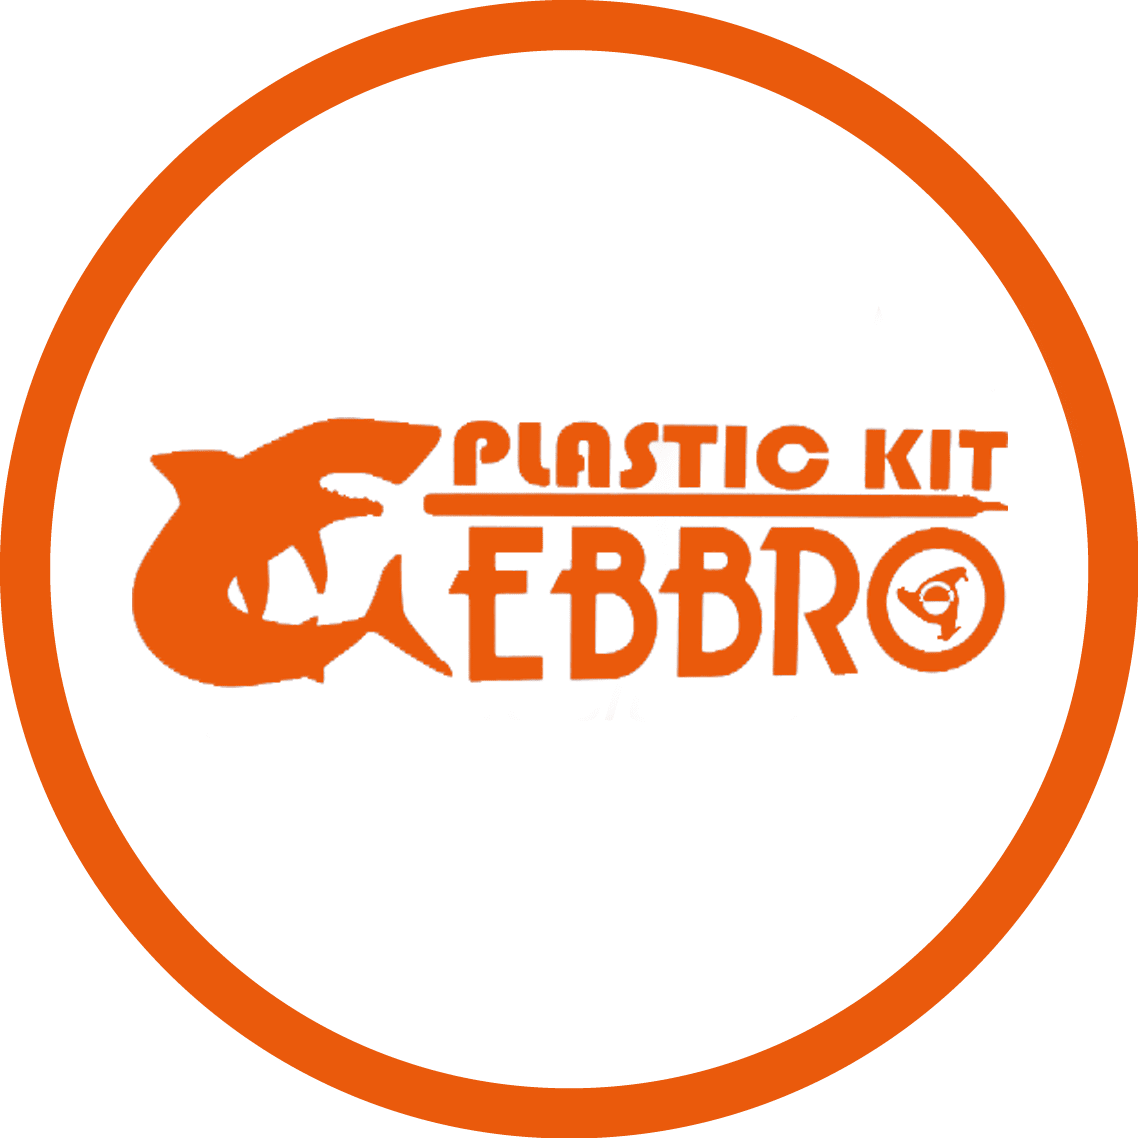 ebbro models plastic kits model civil vehicles planes cars akinteractive